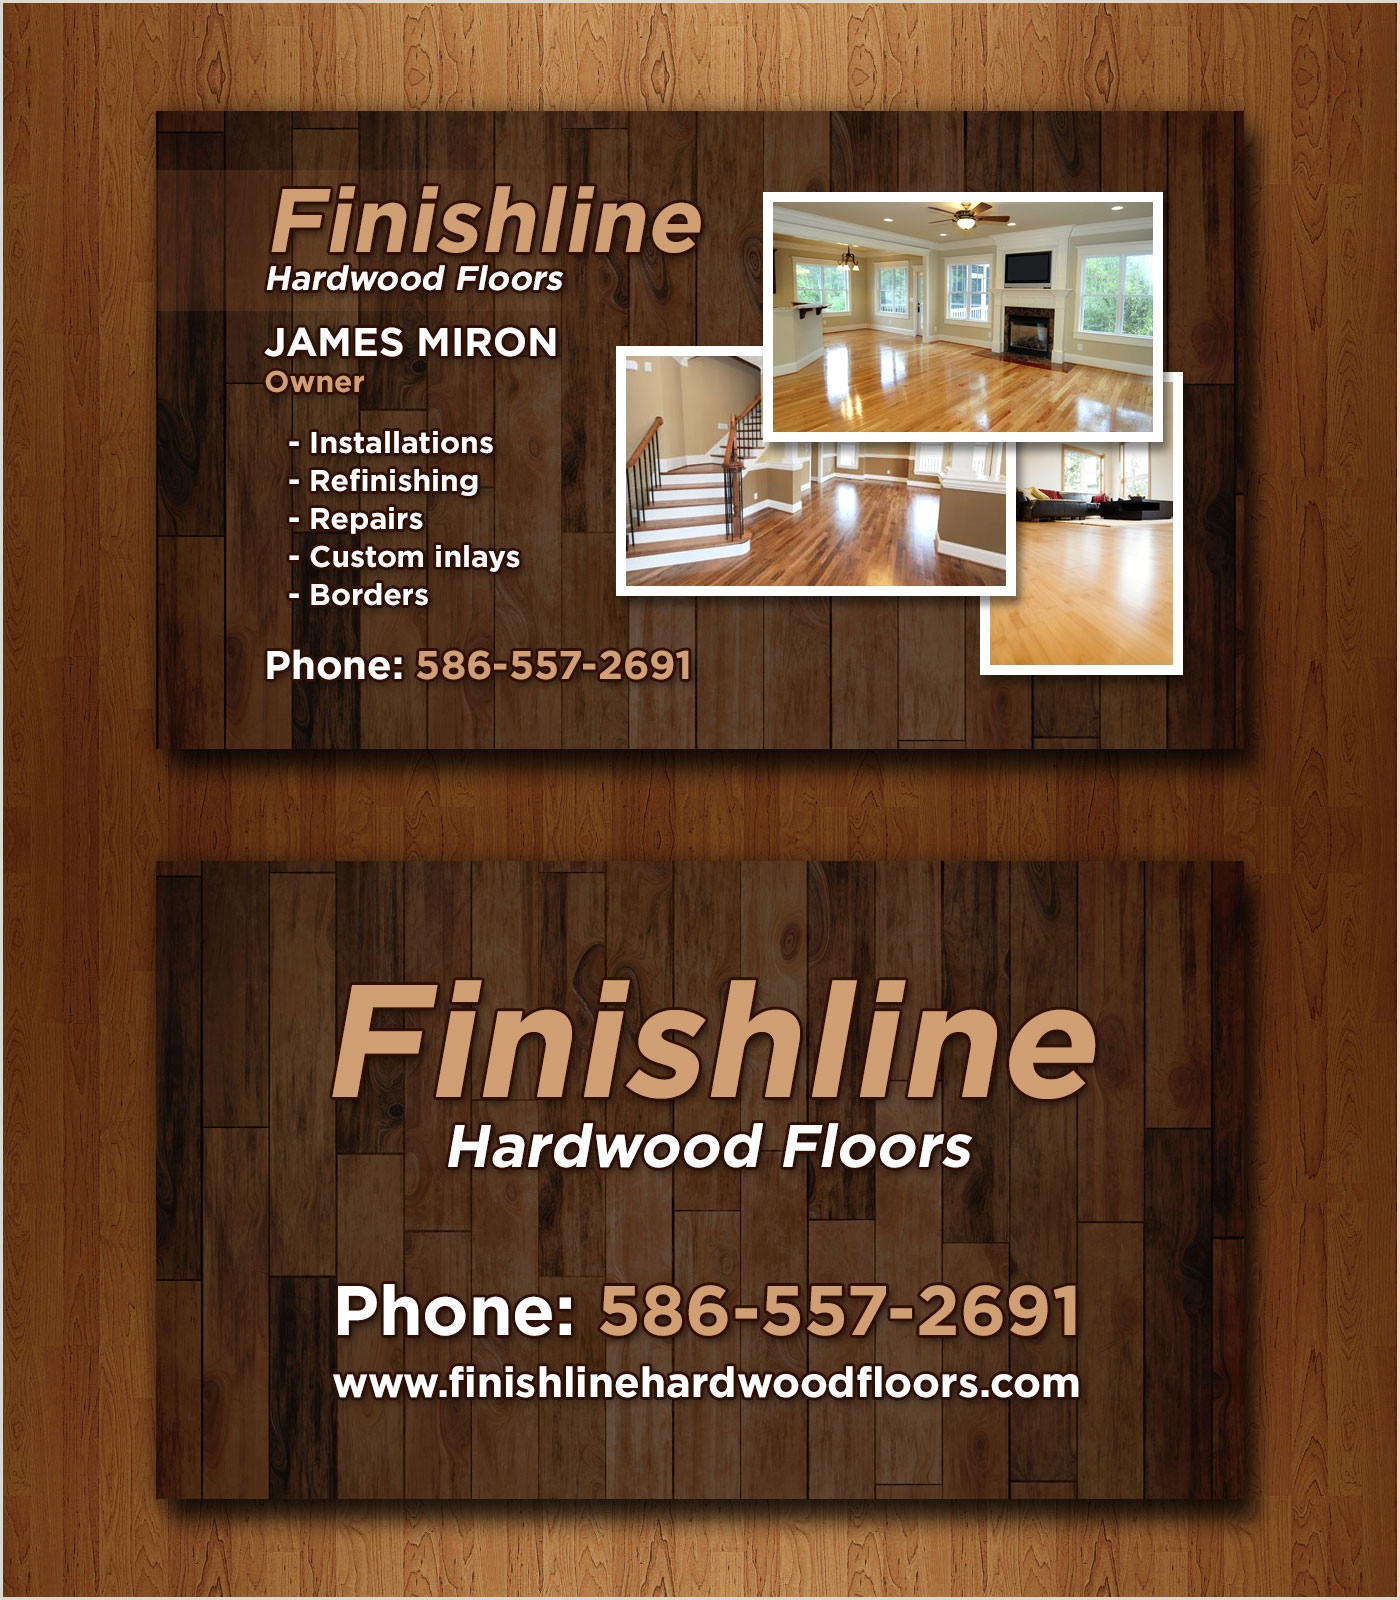 Modern Business Card Ideas 14 Popular Hardwood Flooring Business Card Template